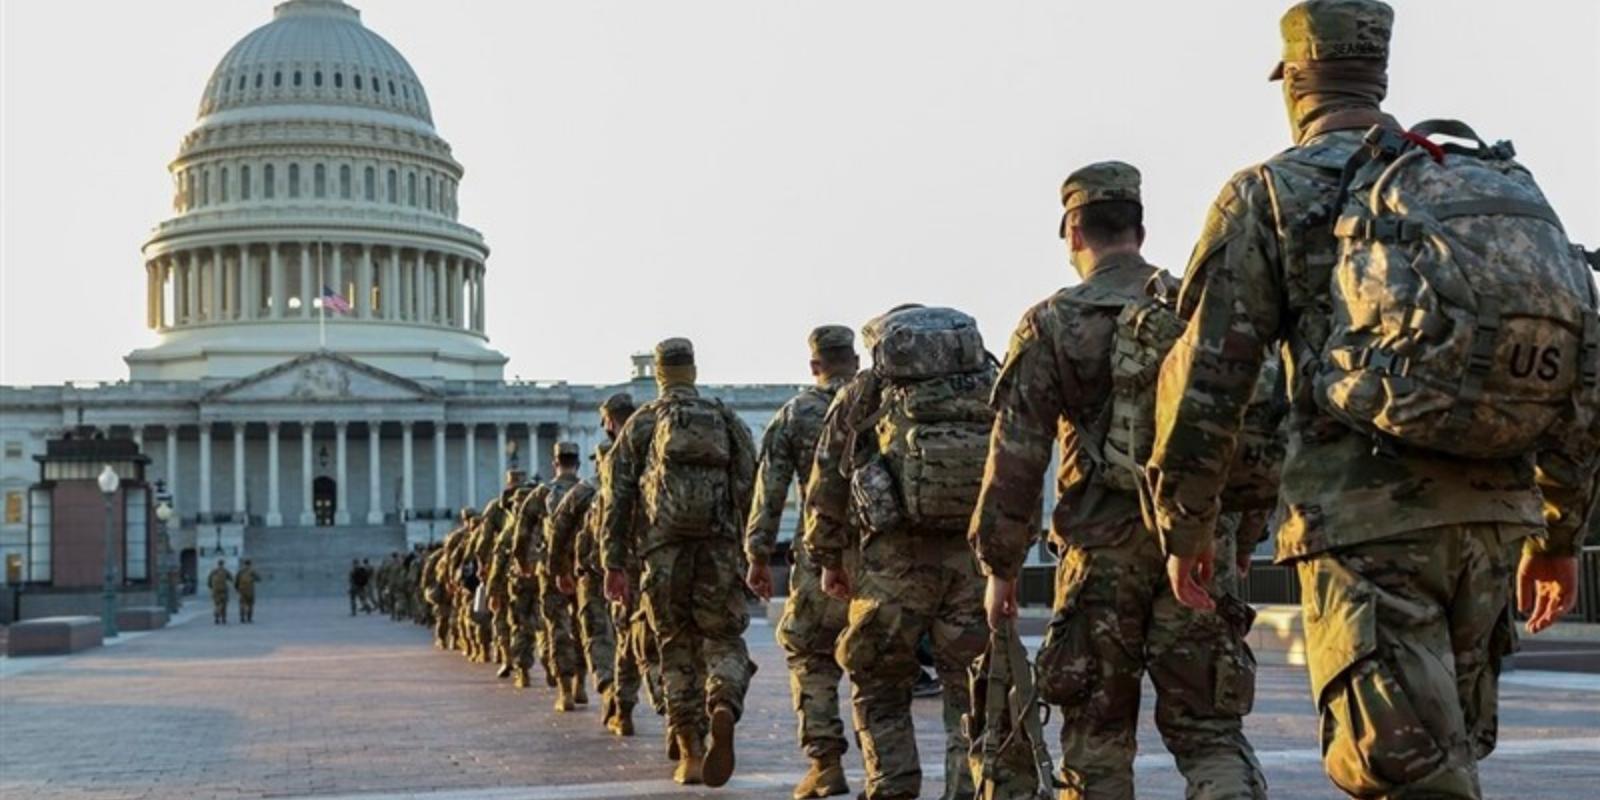 FBI is screening National Guard troops for Trump supporters ahead of inauguration